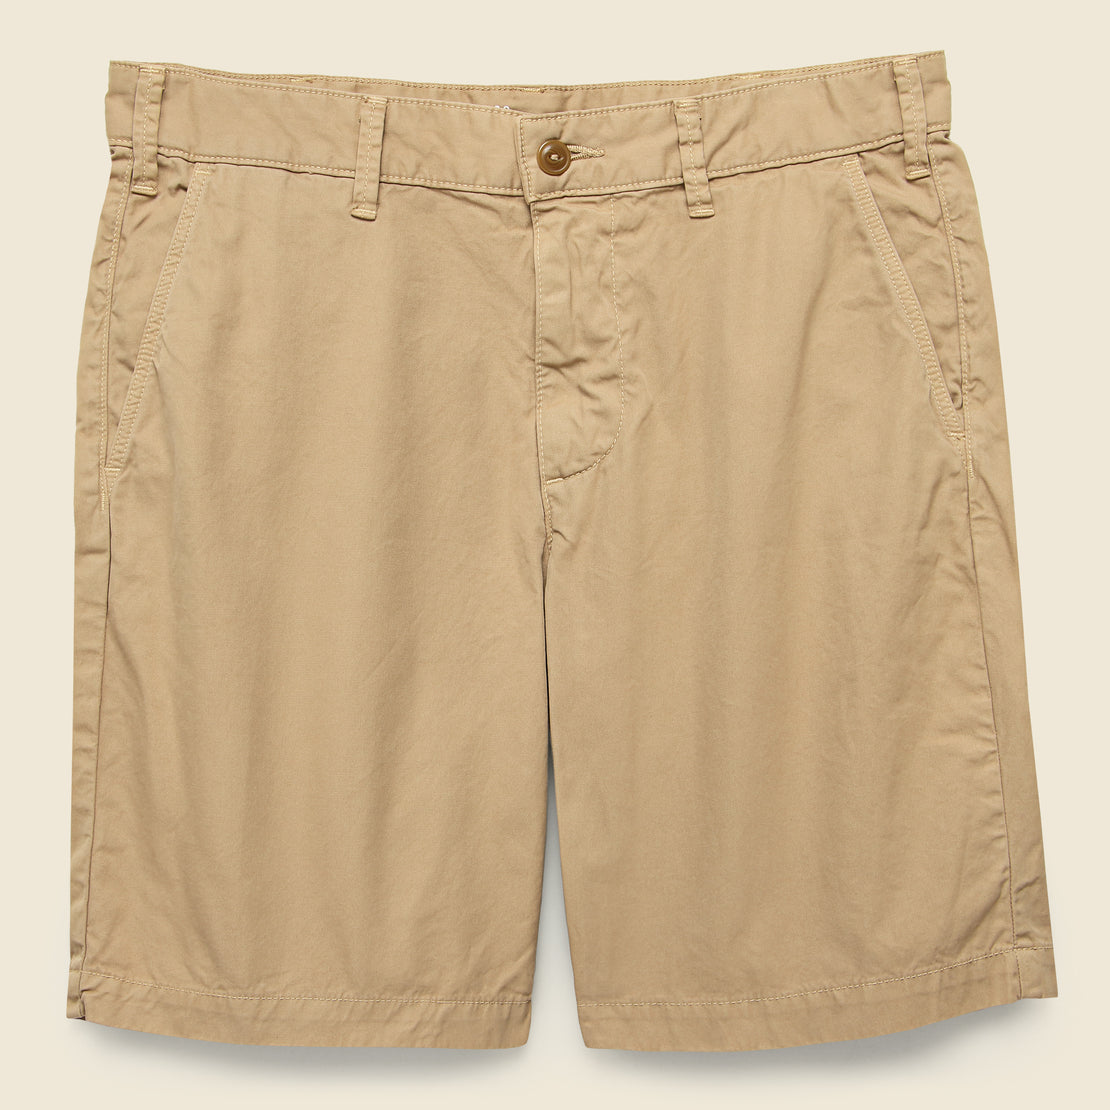 Save Khaki Twill Bermuda Short - Copper